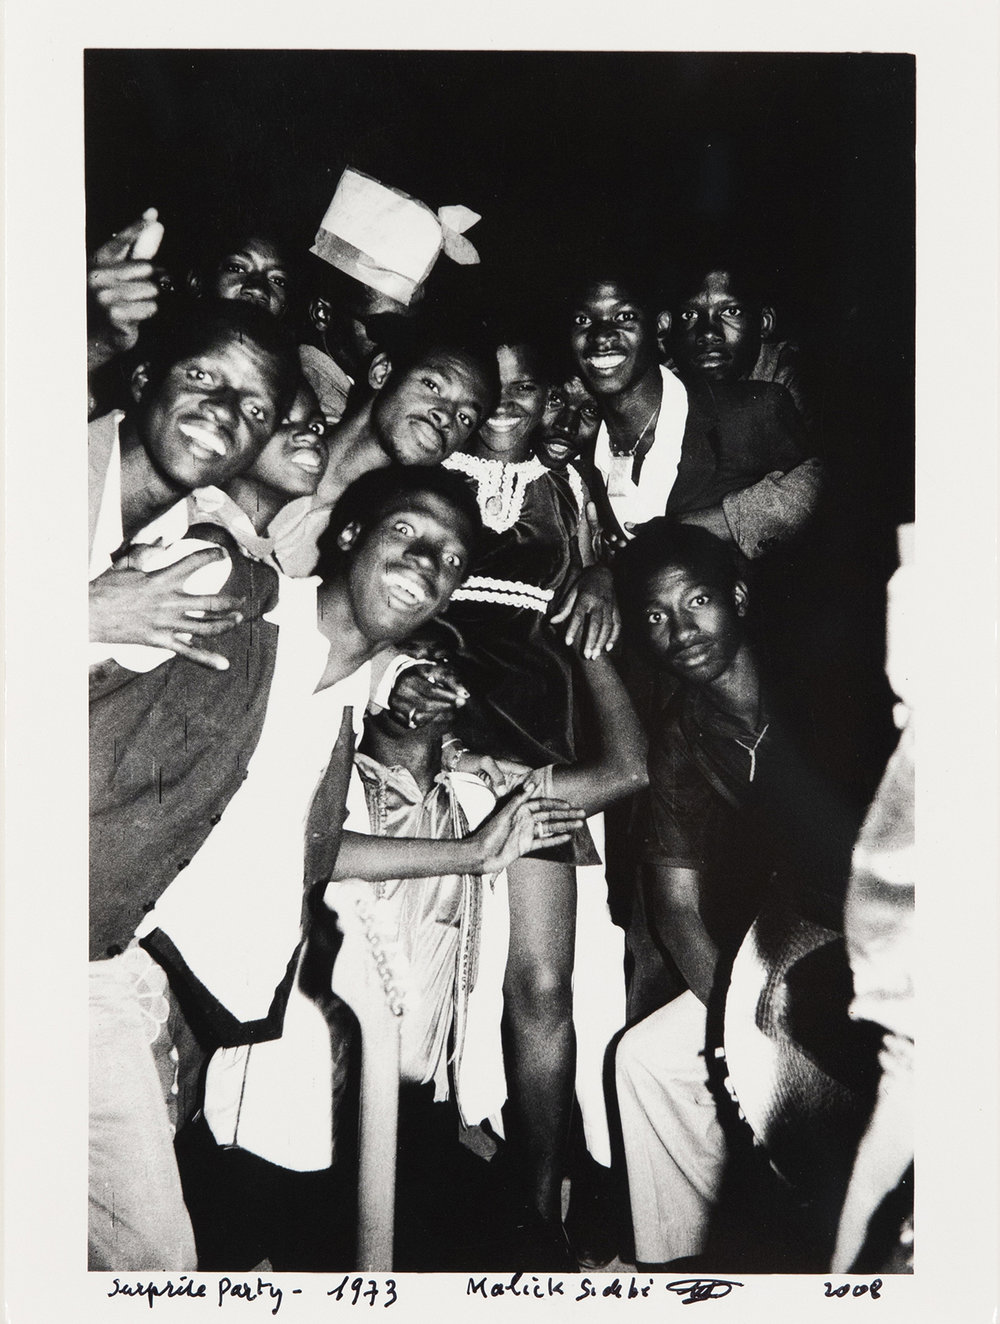 Surprise Party , 1973/2008, gelatin silver print, 8 3/4 x 5 7/8 inches image size, 9 5/8 x 7 inches paper size, signed, titled, and dated on front. Image courtesy Jack Shainman Gallery.